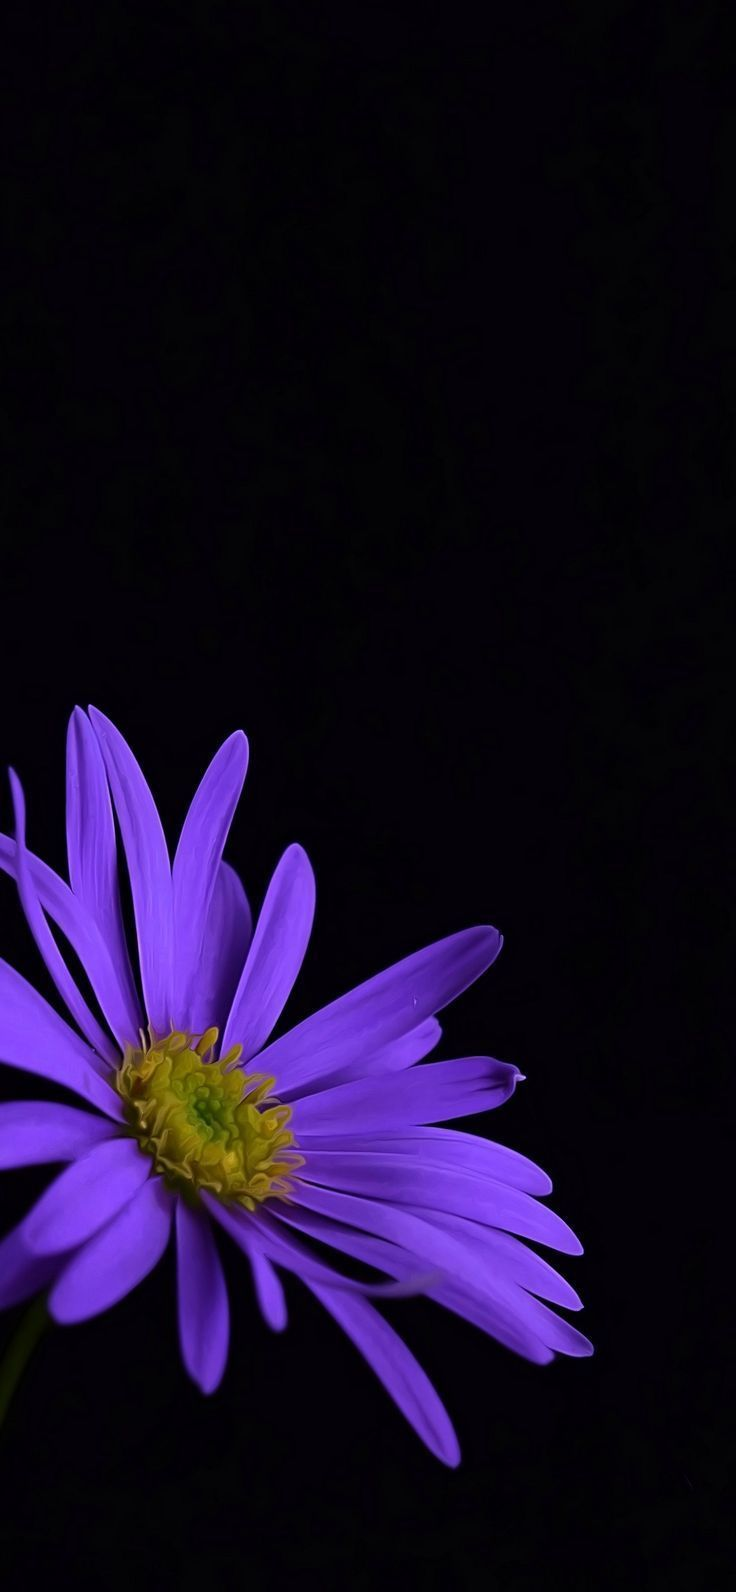 Purple floral wallpaper for Iphone | 3D Wallpapers #Flower ...